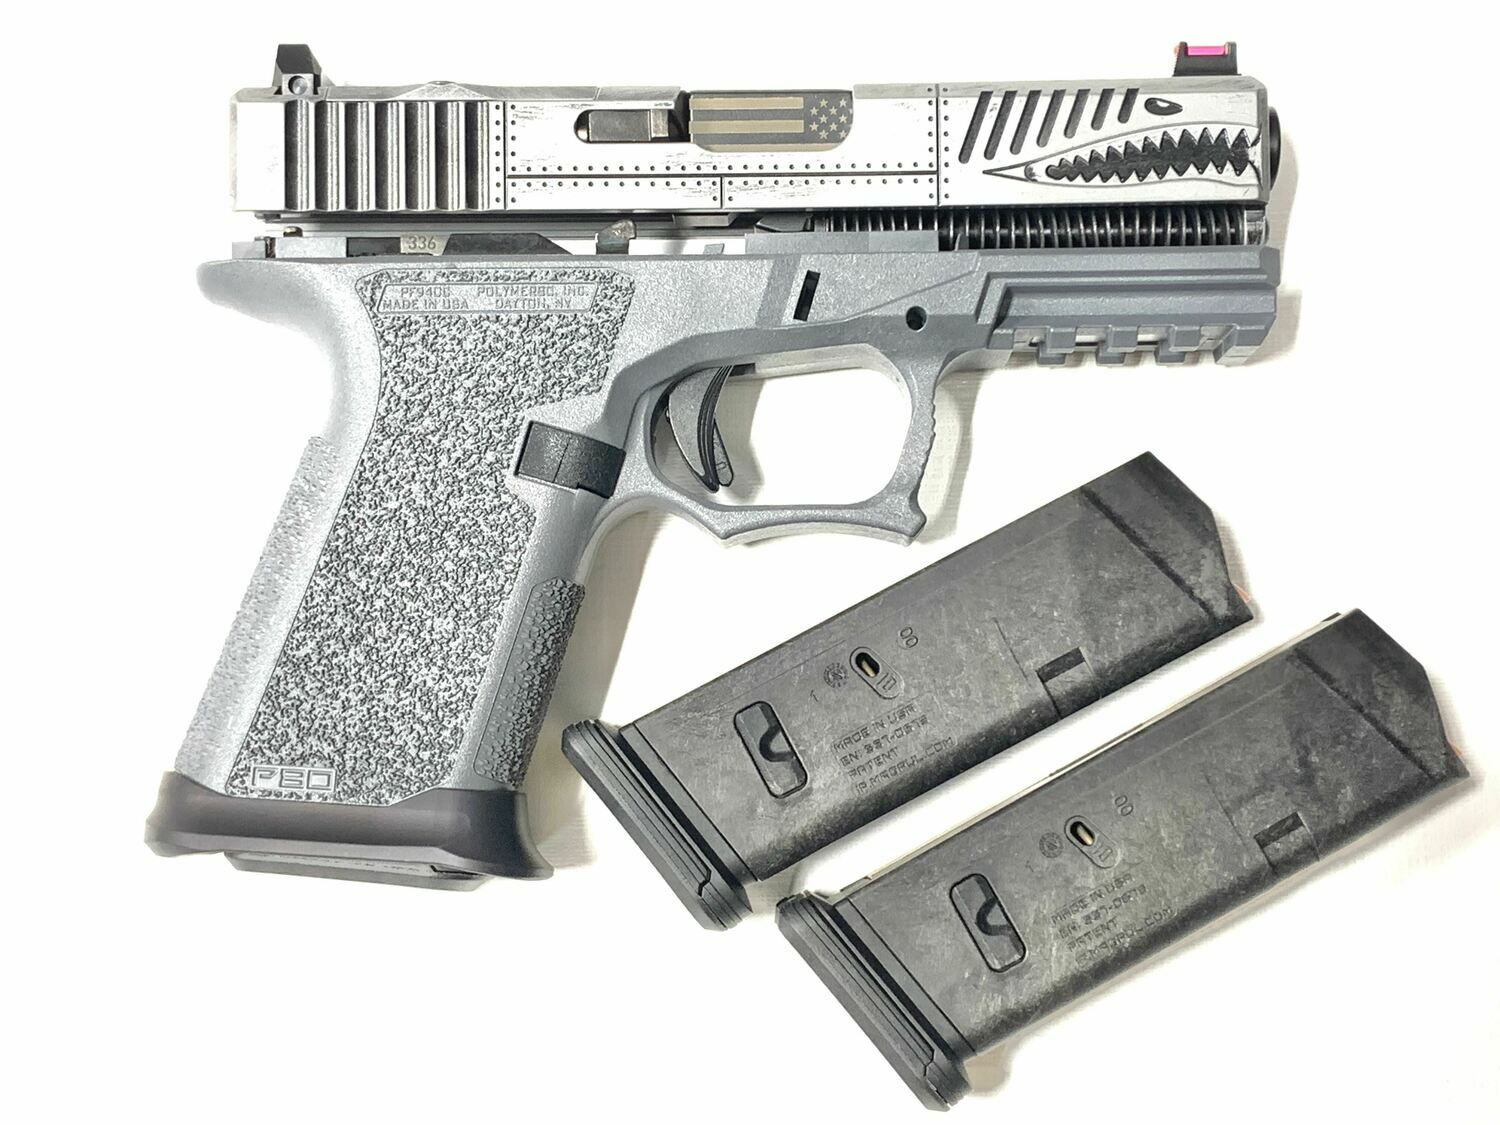 Glock 19 P40 Warhawk Battleworn Gray - 80% Polymer80 Frame Pistol Kit - Comes With 3 Magpul 10rd Magazines